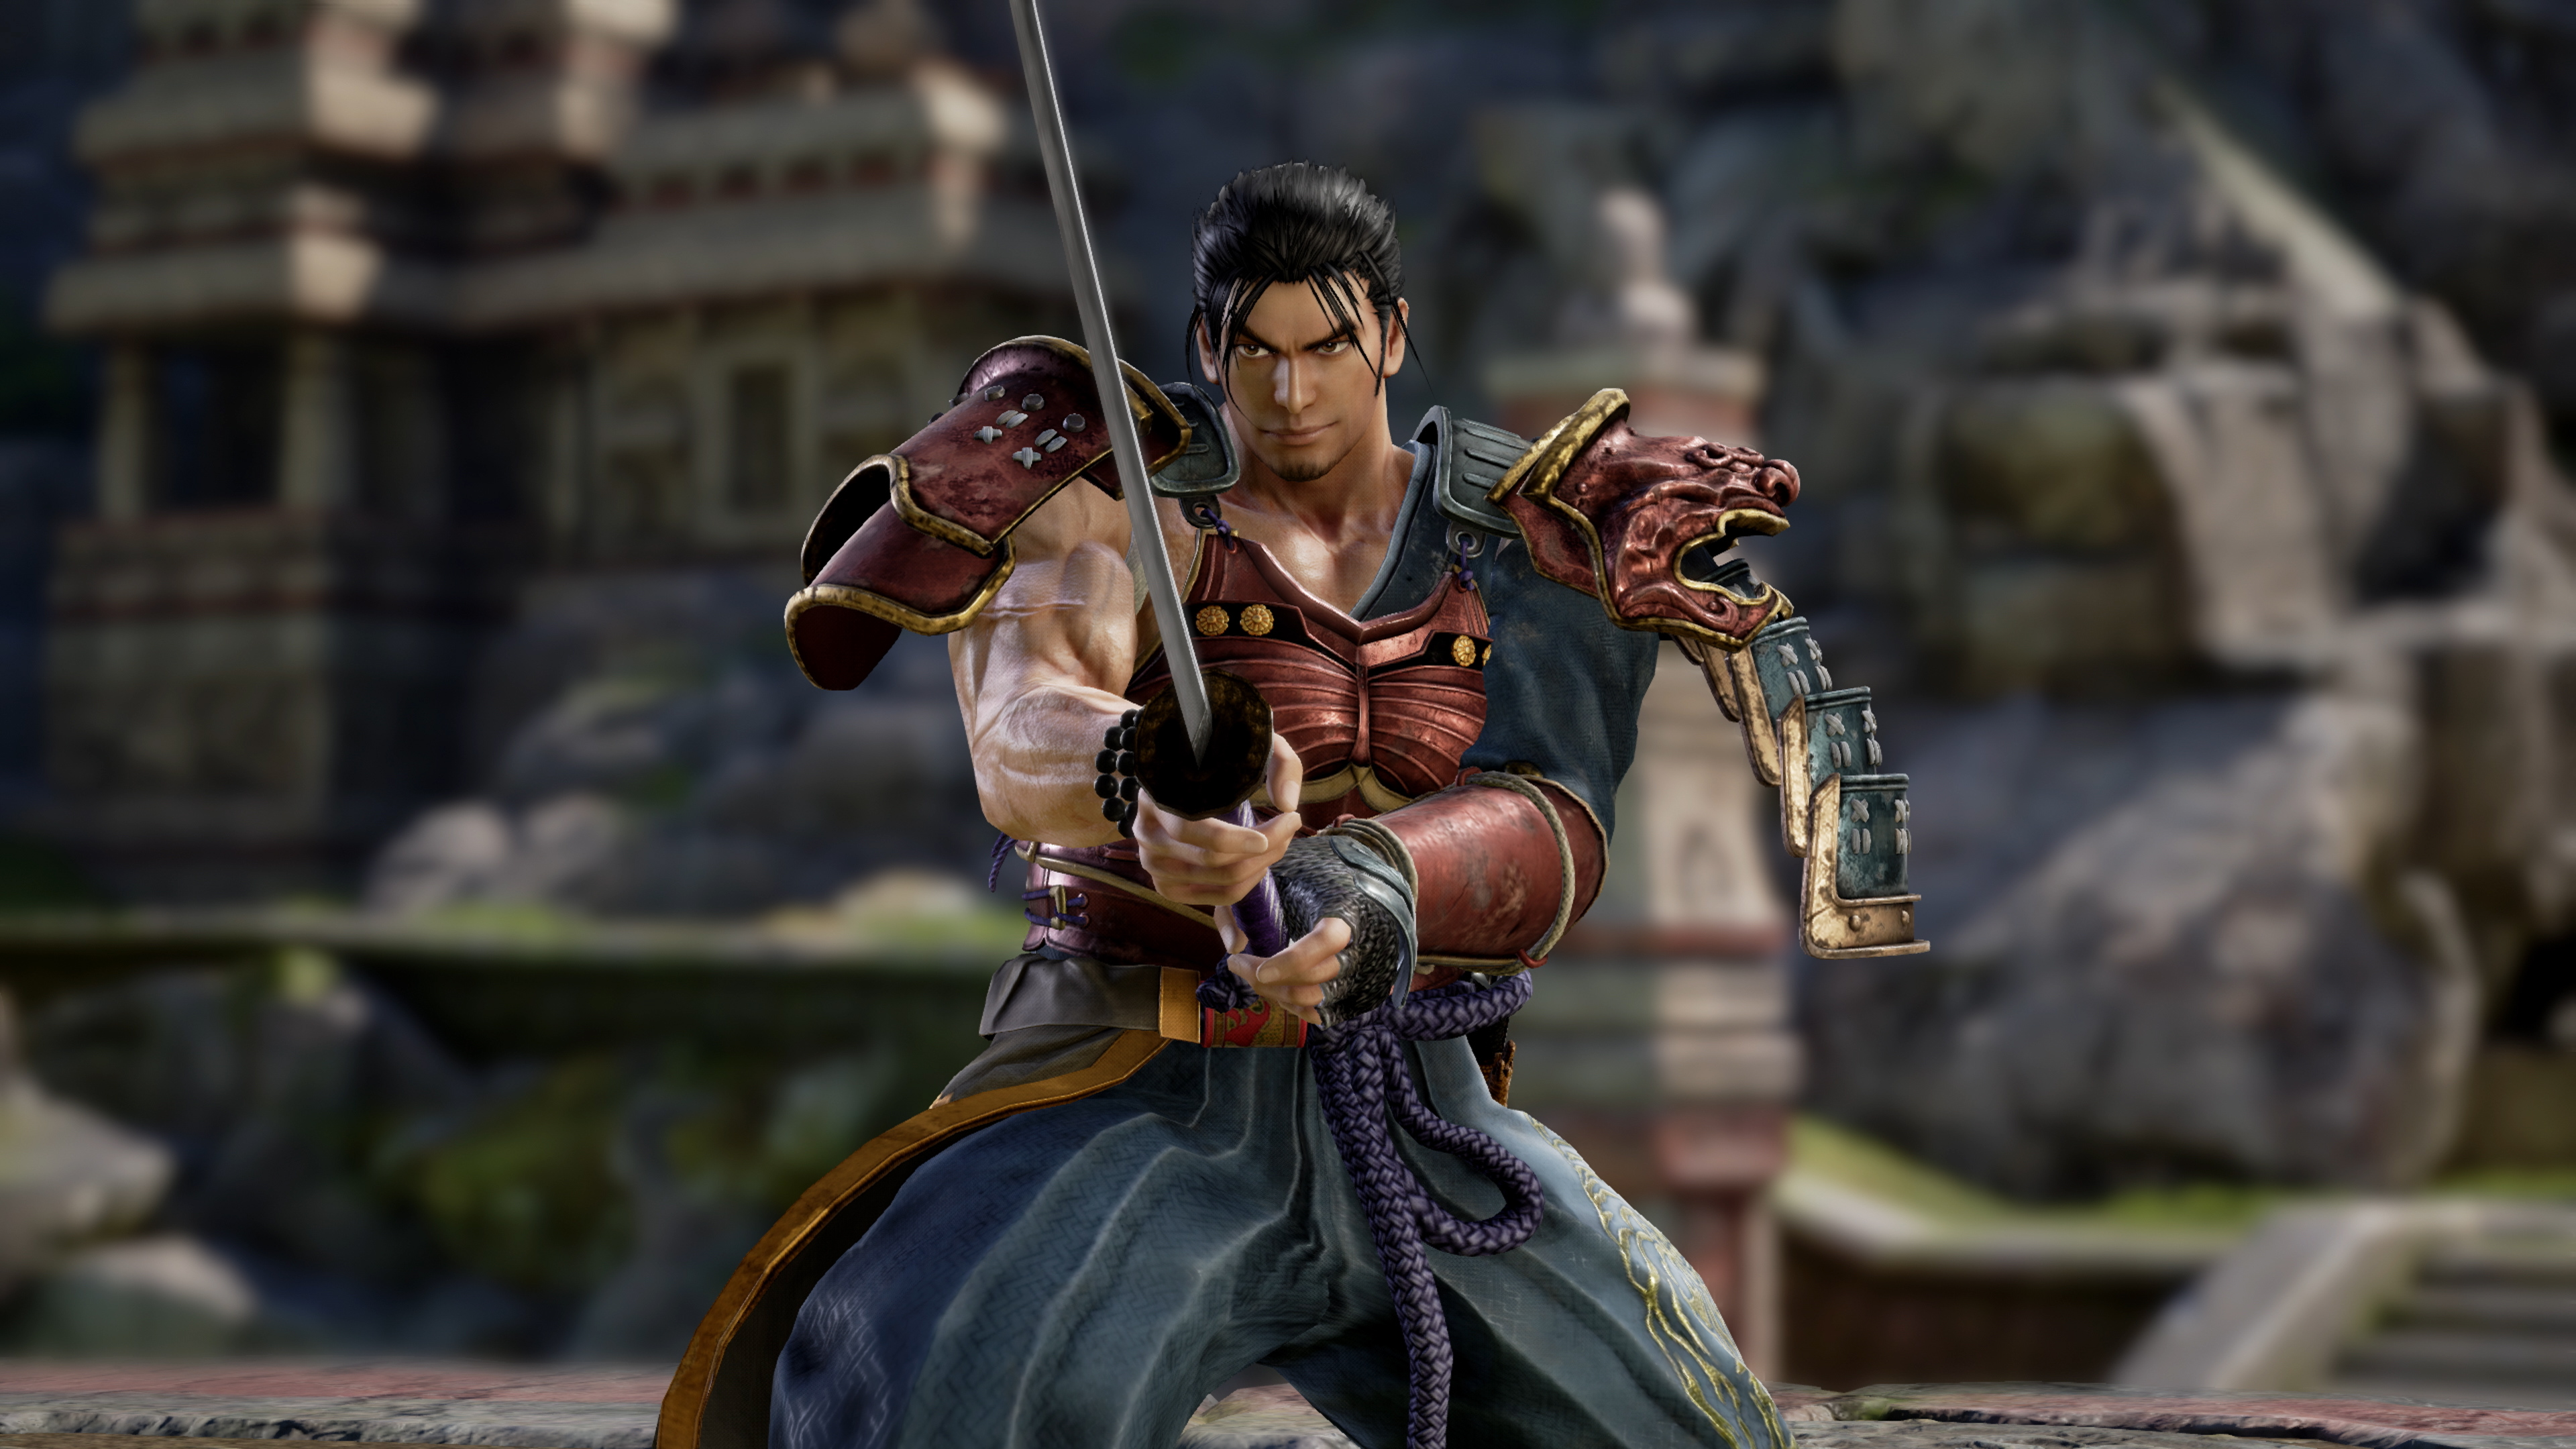 Soulcalibur 6 Analysis Every Version Tested Mouse Iron Man Game Wireless Xbox One X Playstation